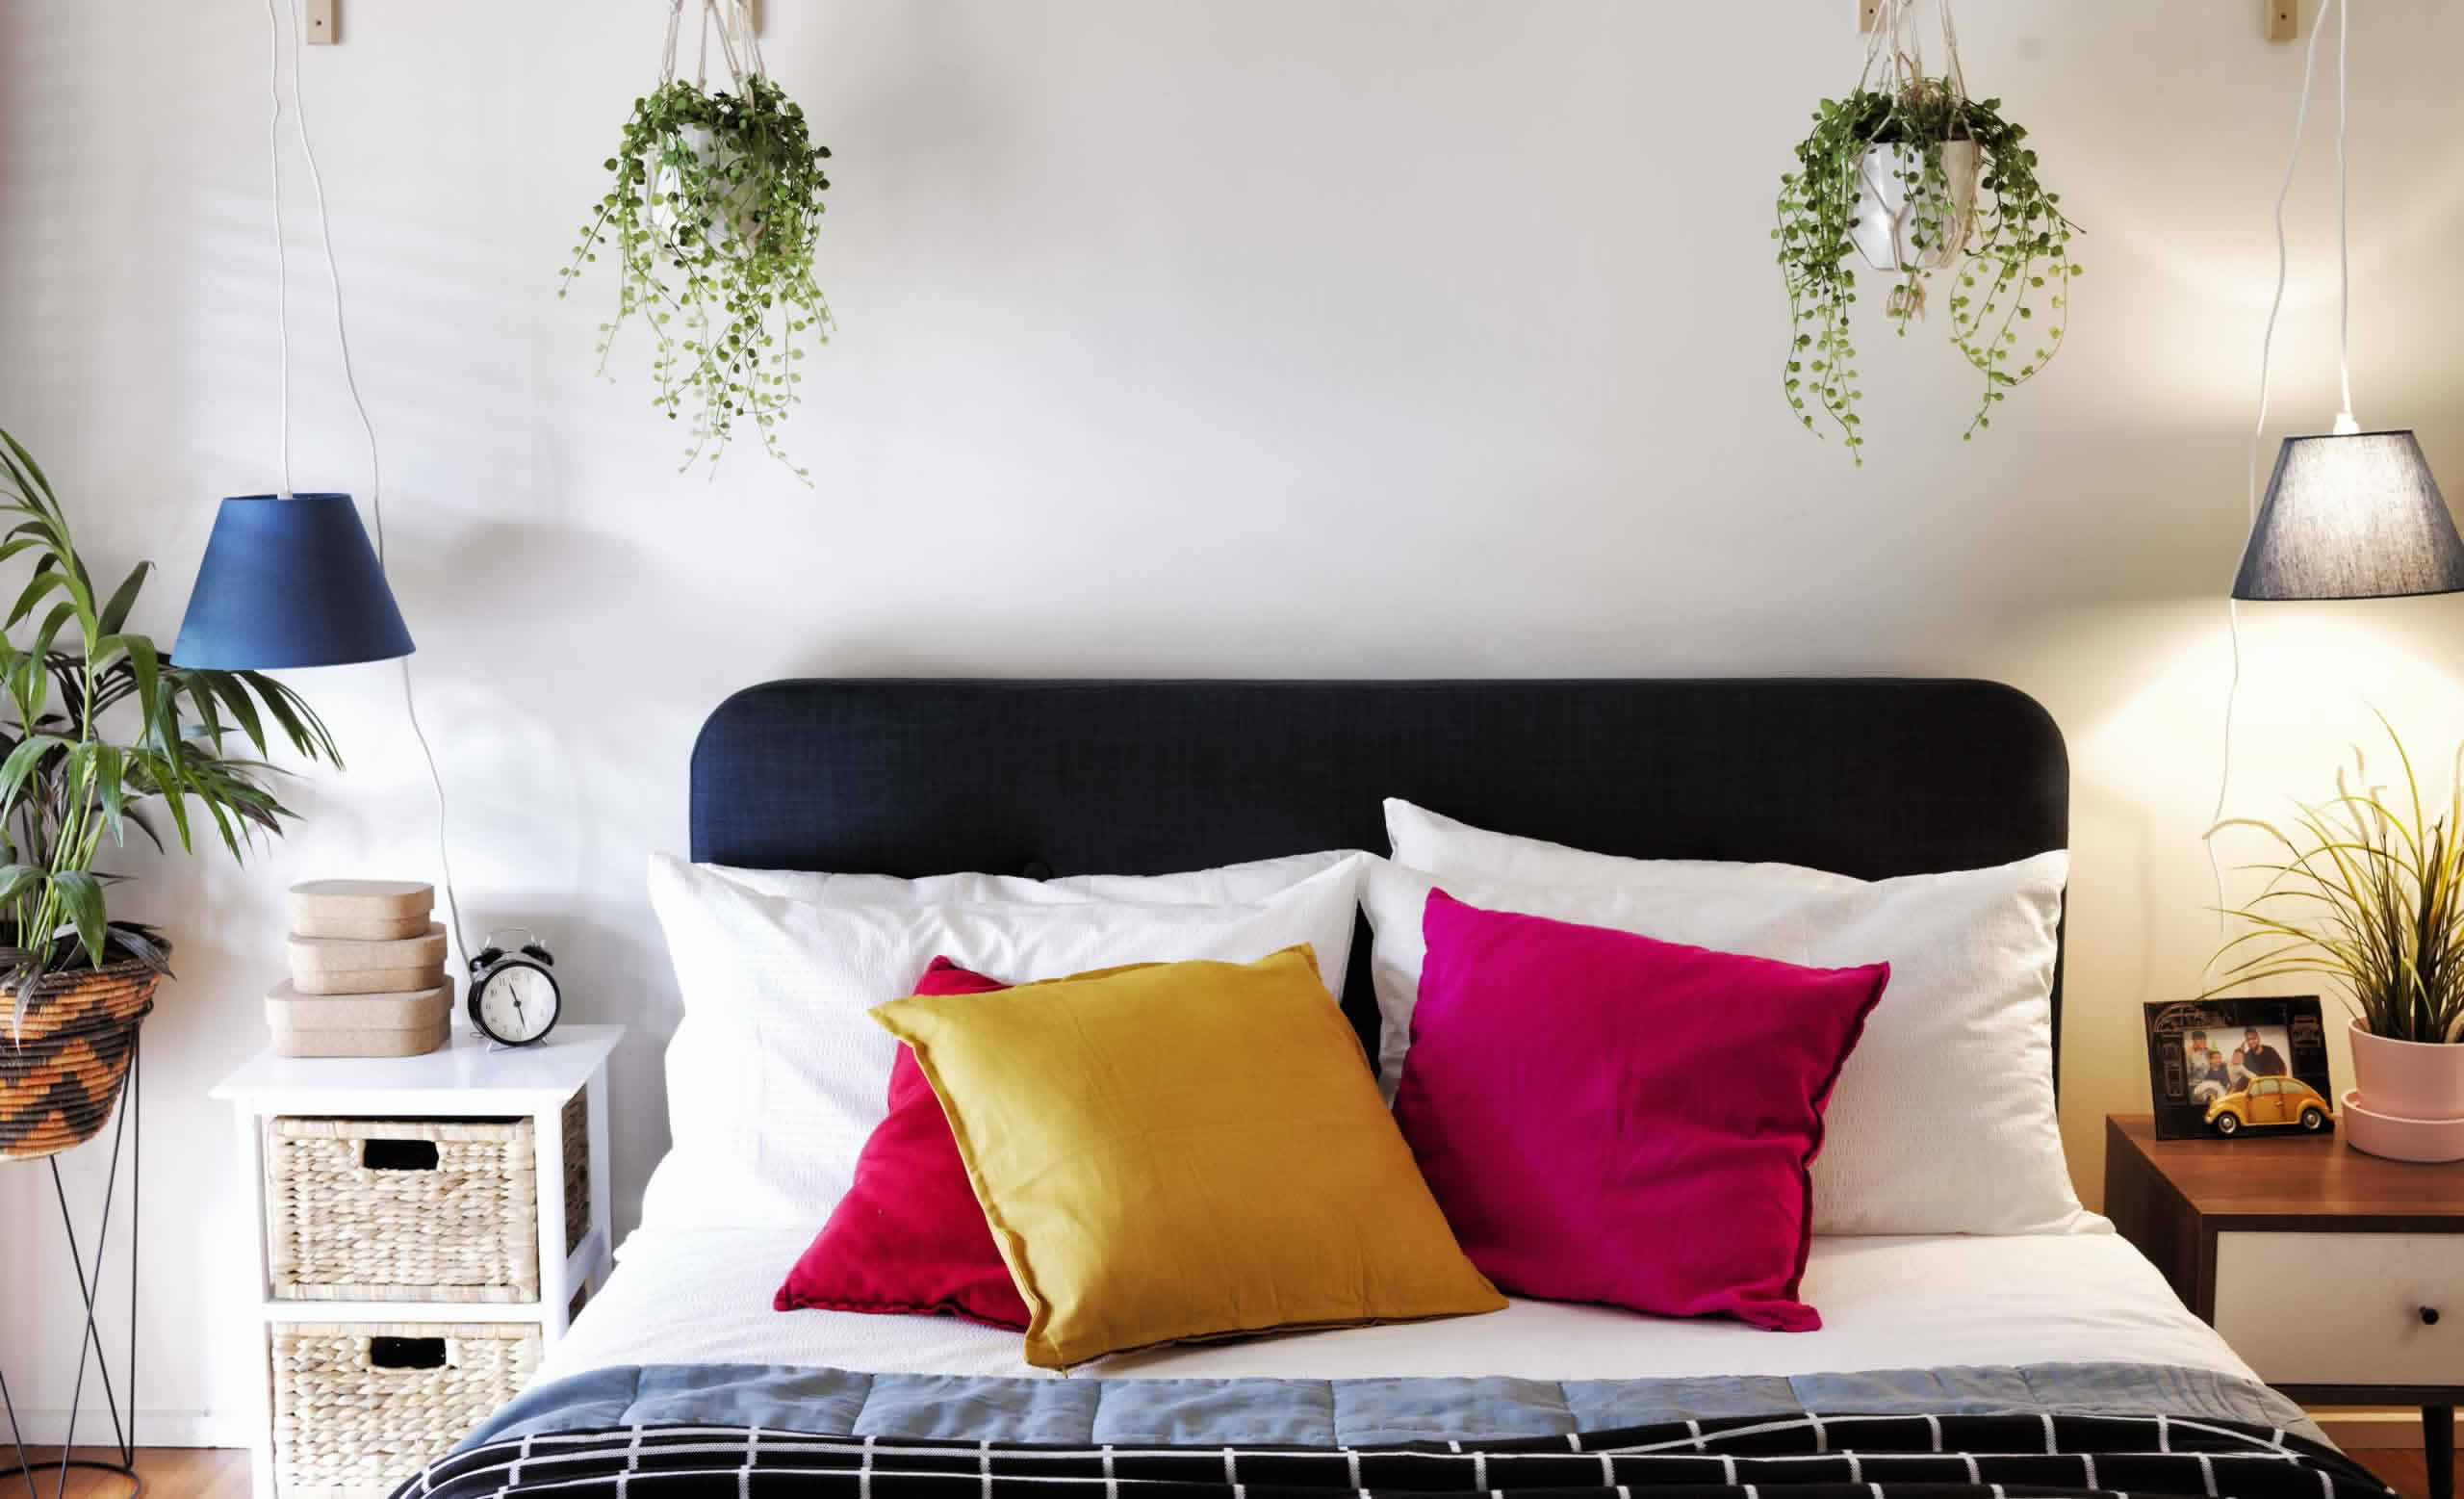 IKEA Ideas - Refresh your bedroom in 3 easy steps.